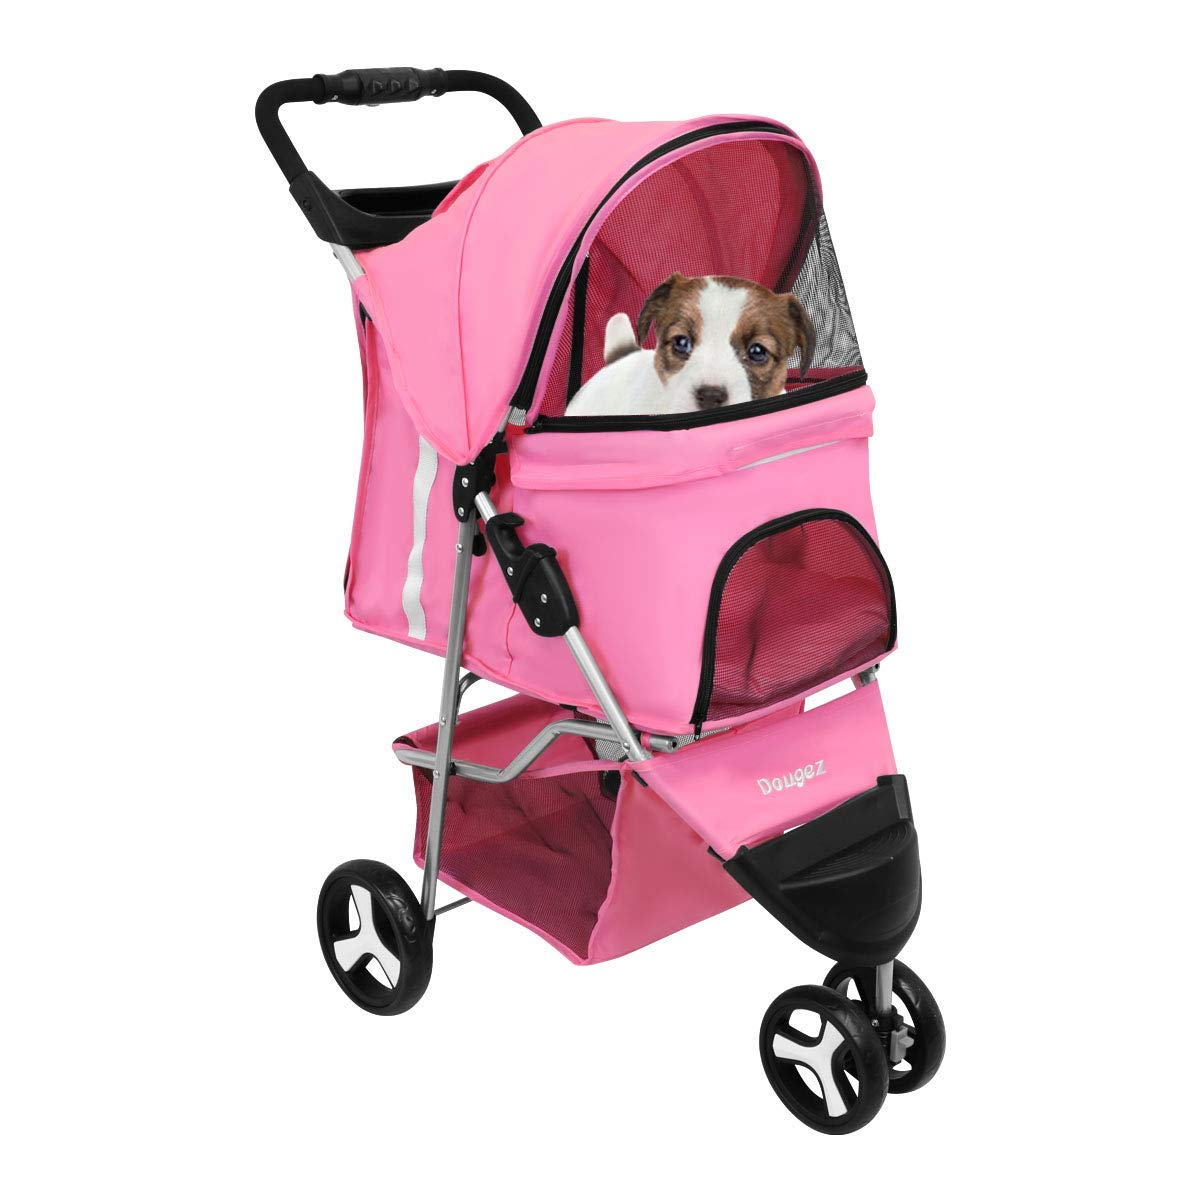 Magshion Premium Folding Pet Cat Dog Stroller Cart Travel Carrier Up To 30lbs Black